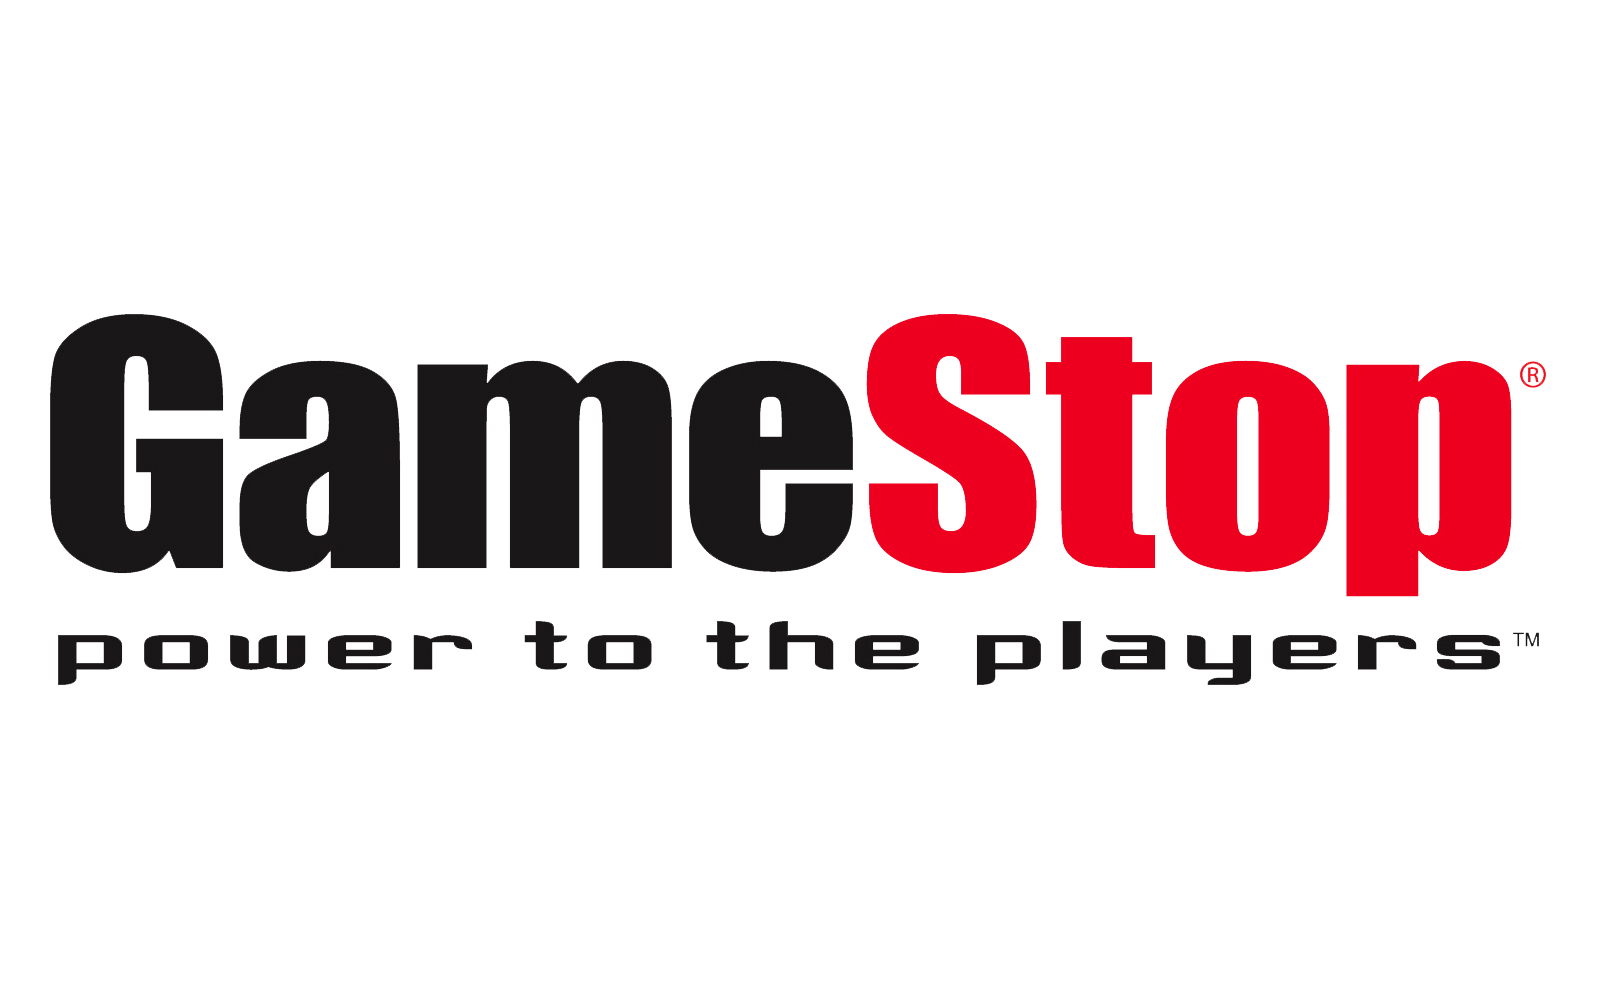 Former GameStop VP to Serve Four Years in Prison for Stealing $1.7 Million from Company